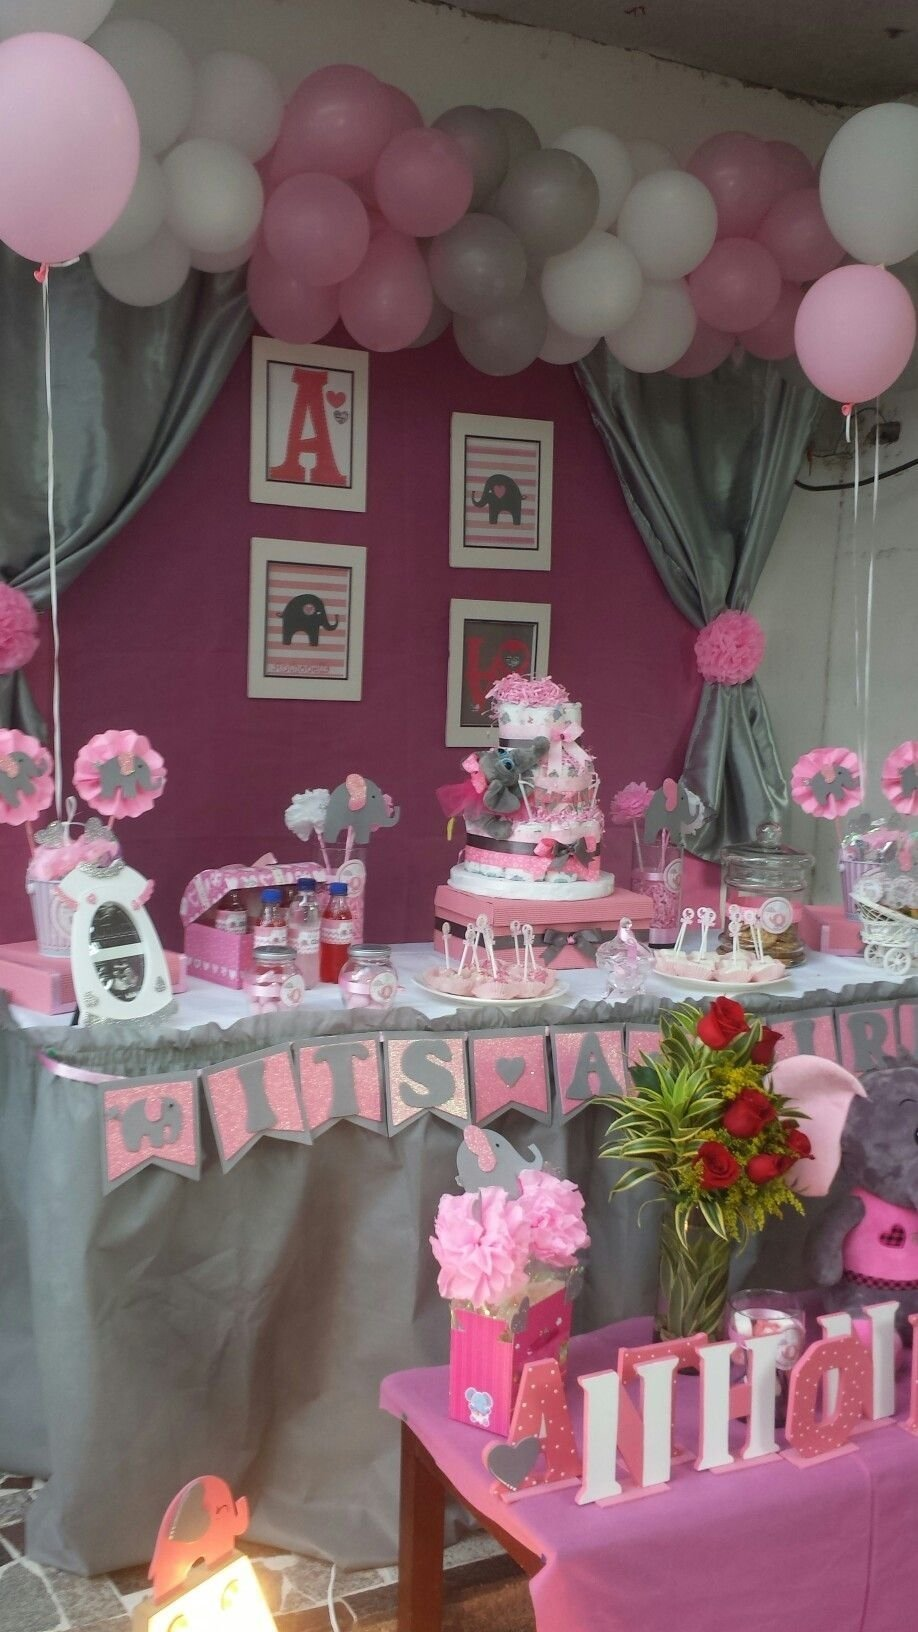 10 Fashionable Baby Girl Baby Shower Ideas these low budget baby shower ideas wont empty your wallet fast 2021